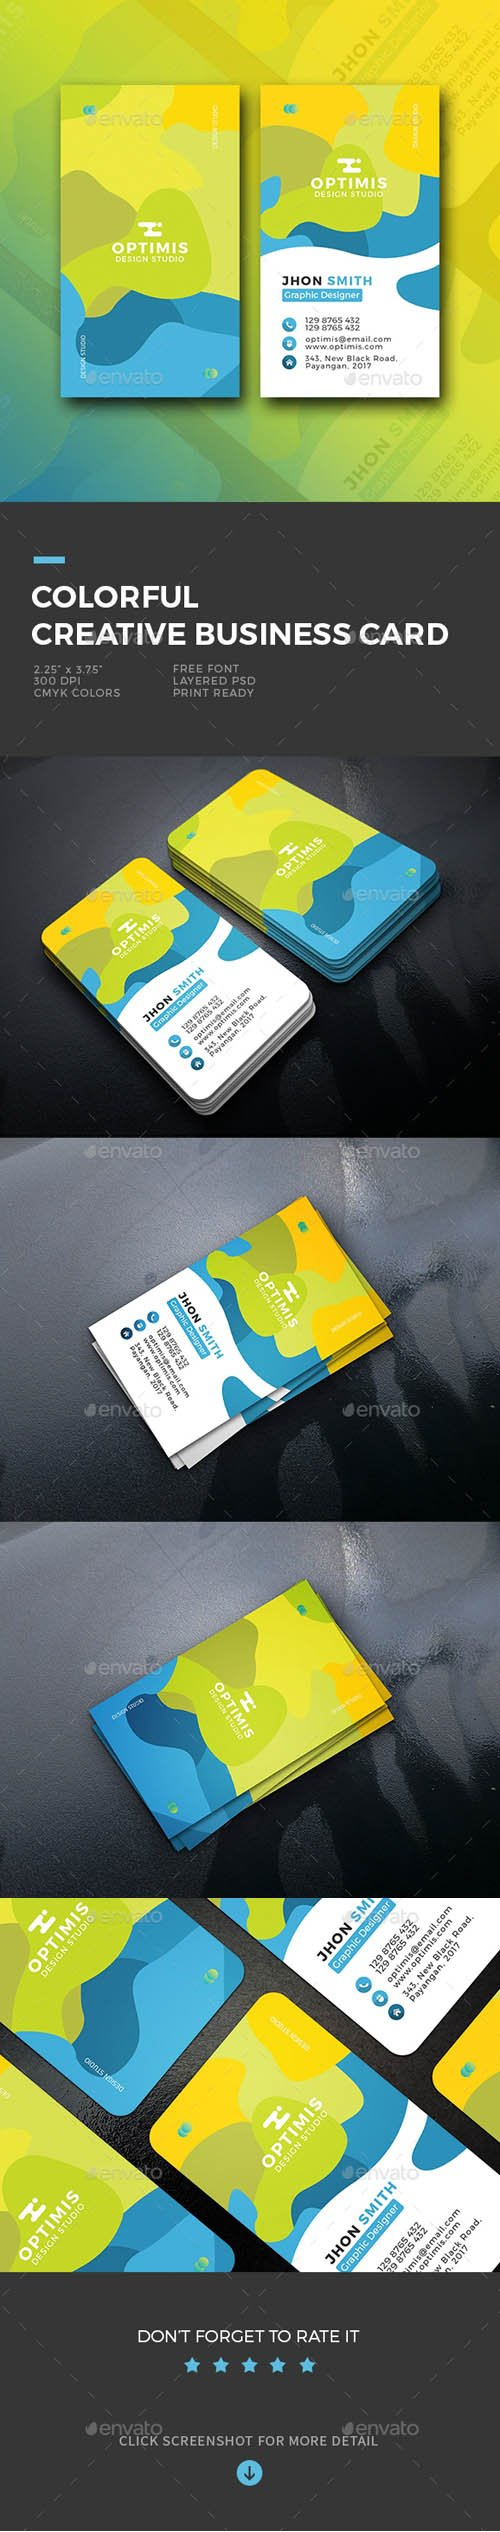 GR - Colorful Creative Business Card 20121184